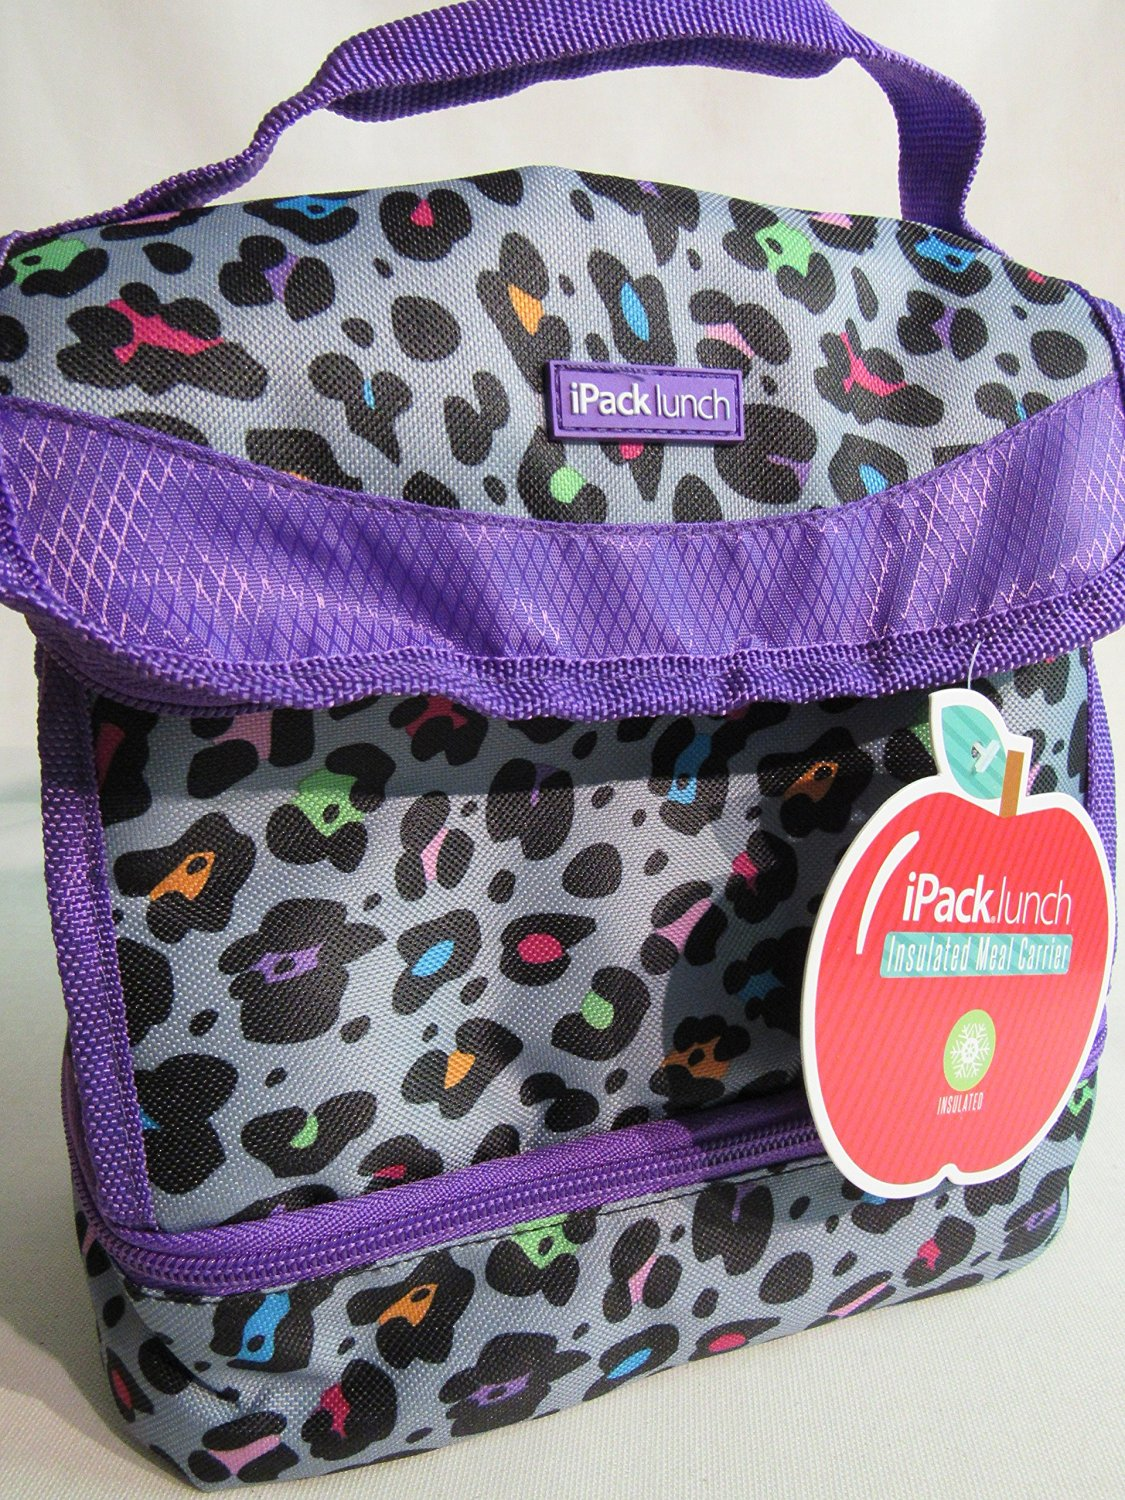 Ipack Lunch Insulated Meal Carrier 2 Compartment Bag Tote Purple Cheetah Print